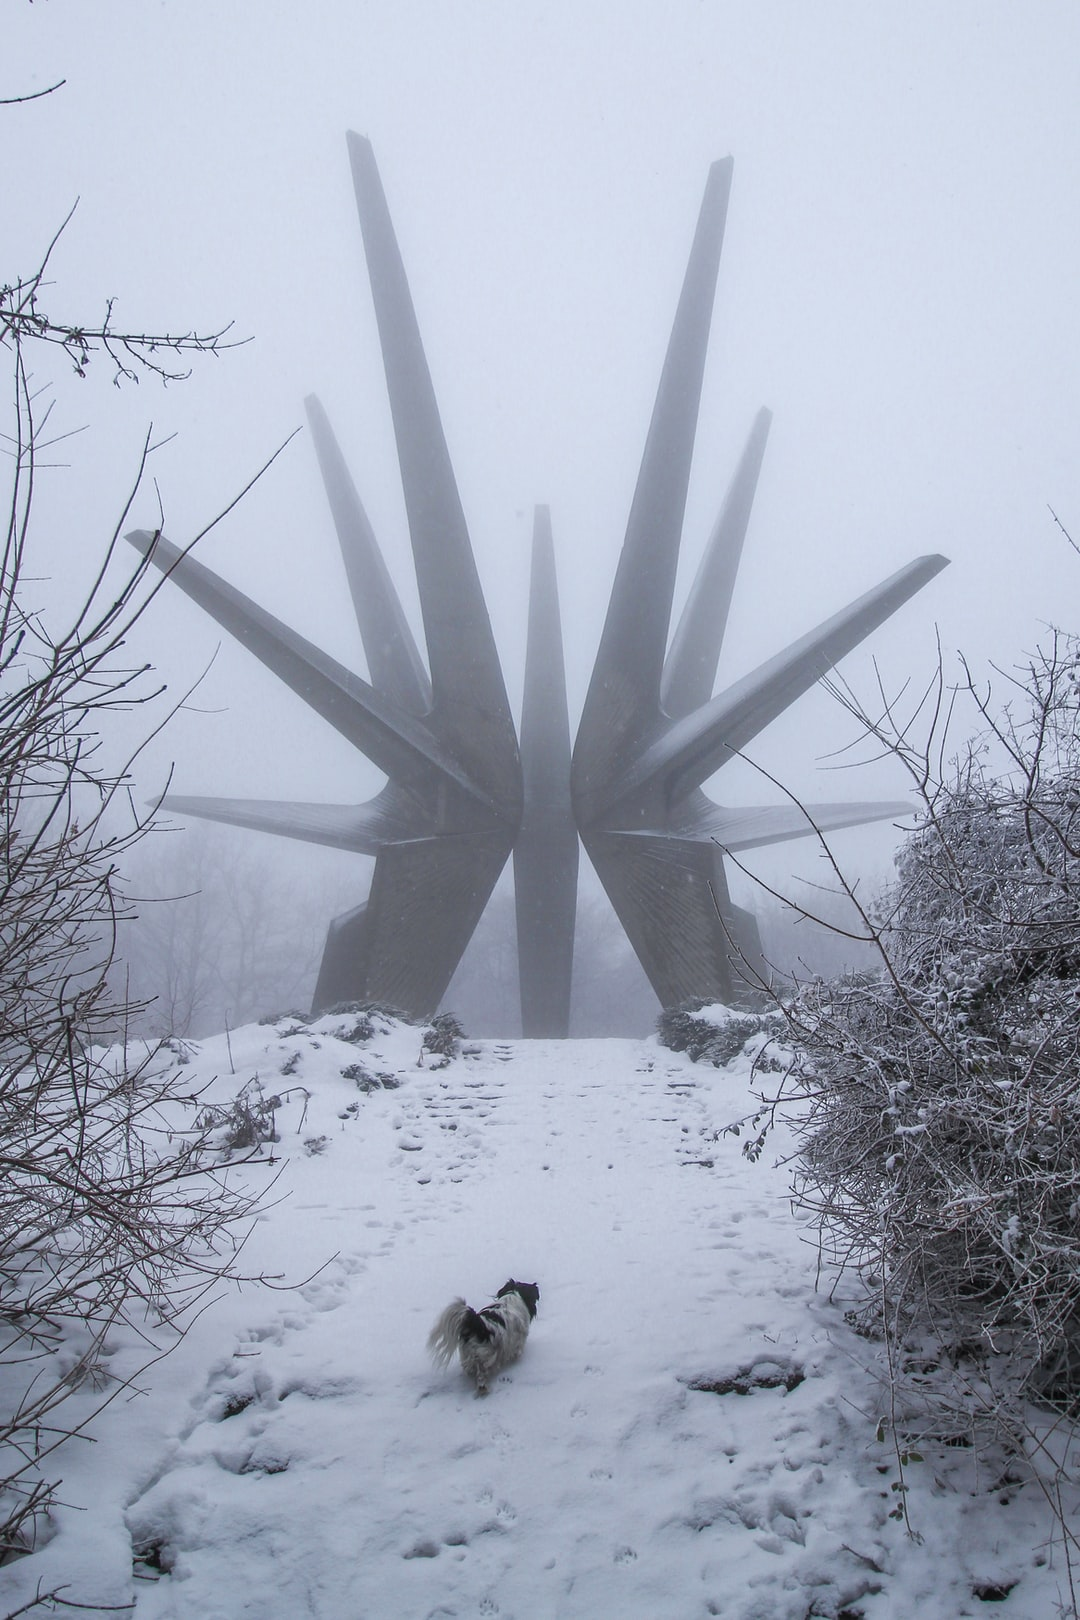 """Built in 1970 by an unknown artist, the brutalist monument celebrates a group of partisan fighters in World War II who battled against the German occupation in the south of Belgrade. During the fighting the battalions lost over 5,000 soldiers but their """"guns of freedom kept shooting. More photos on my Instagram > https://www.instagram.com/valentinsalja"""